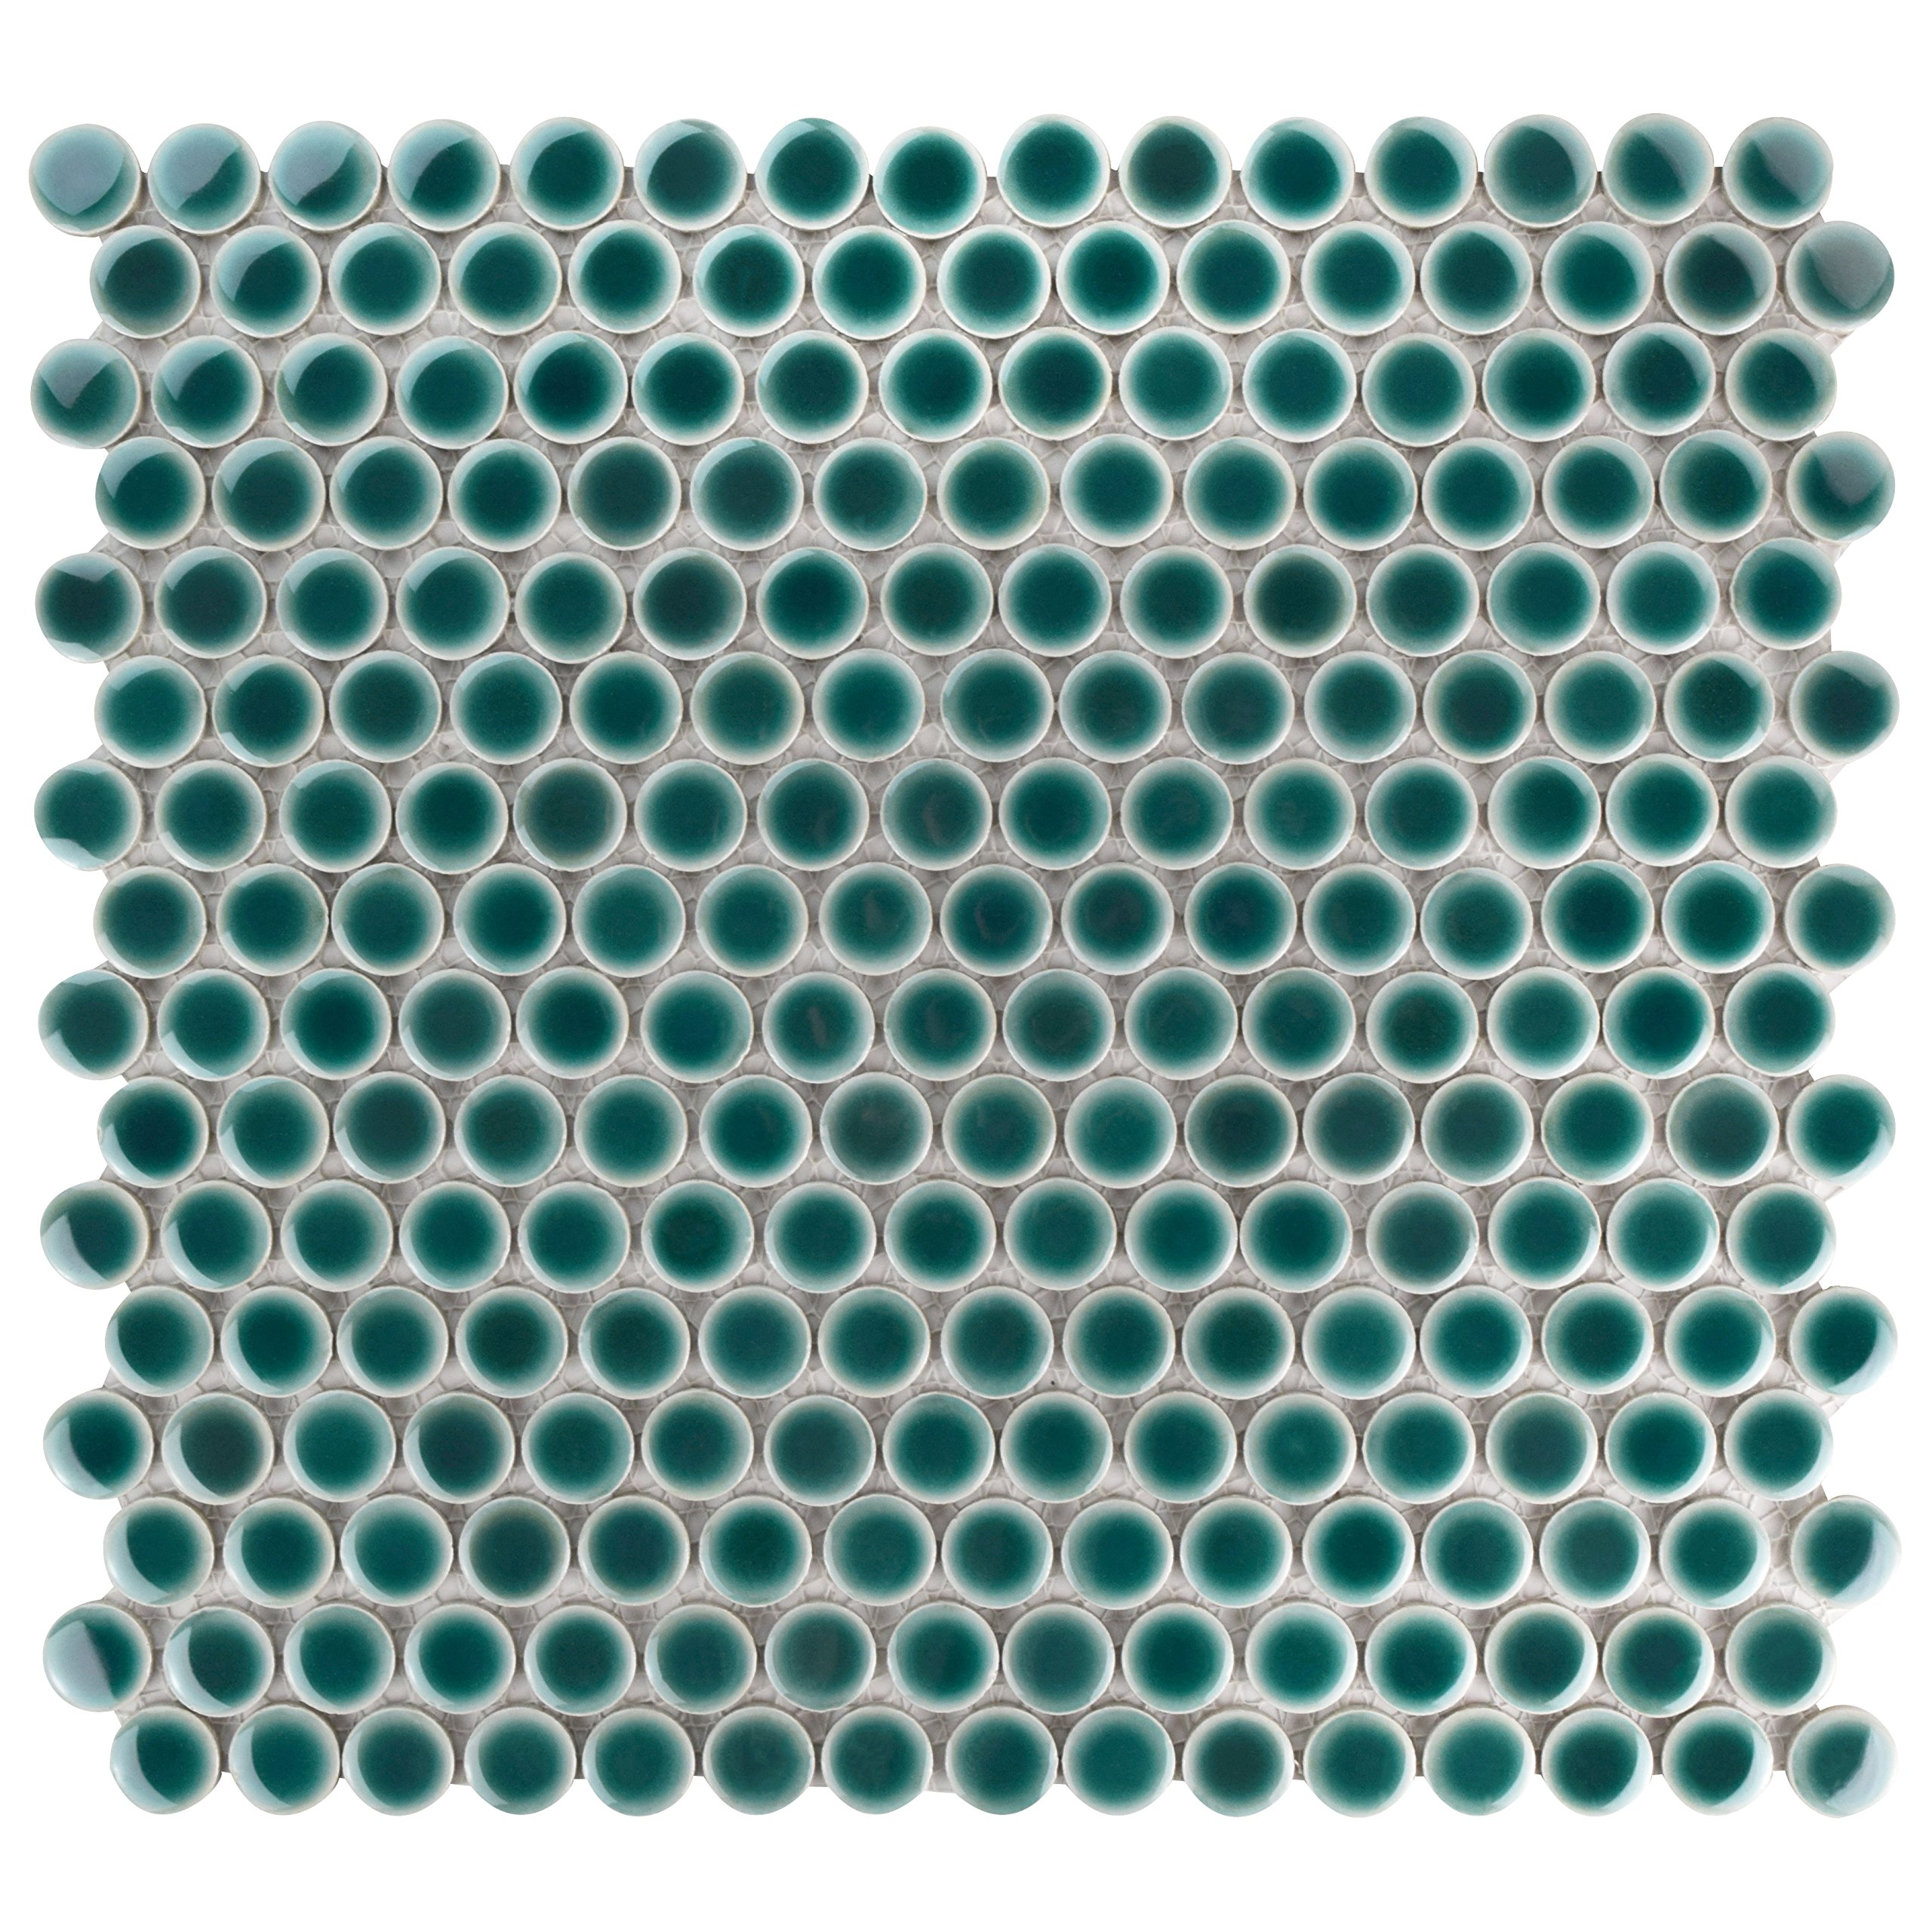 SomerTile FKOMPR30 Penny Porcelain Mosaic Floor and Wall, 12'' x 12.625'', Emerald Green Tile, 10 Piece